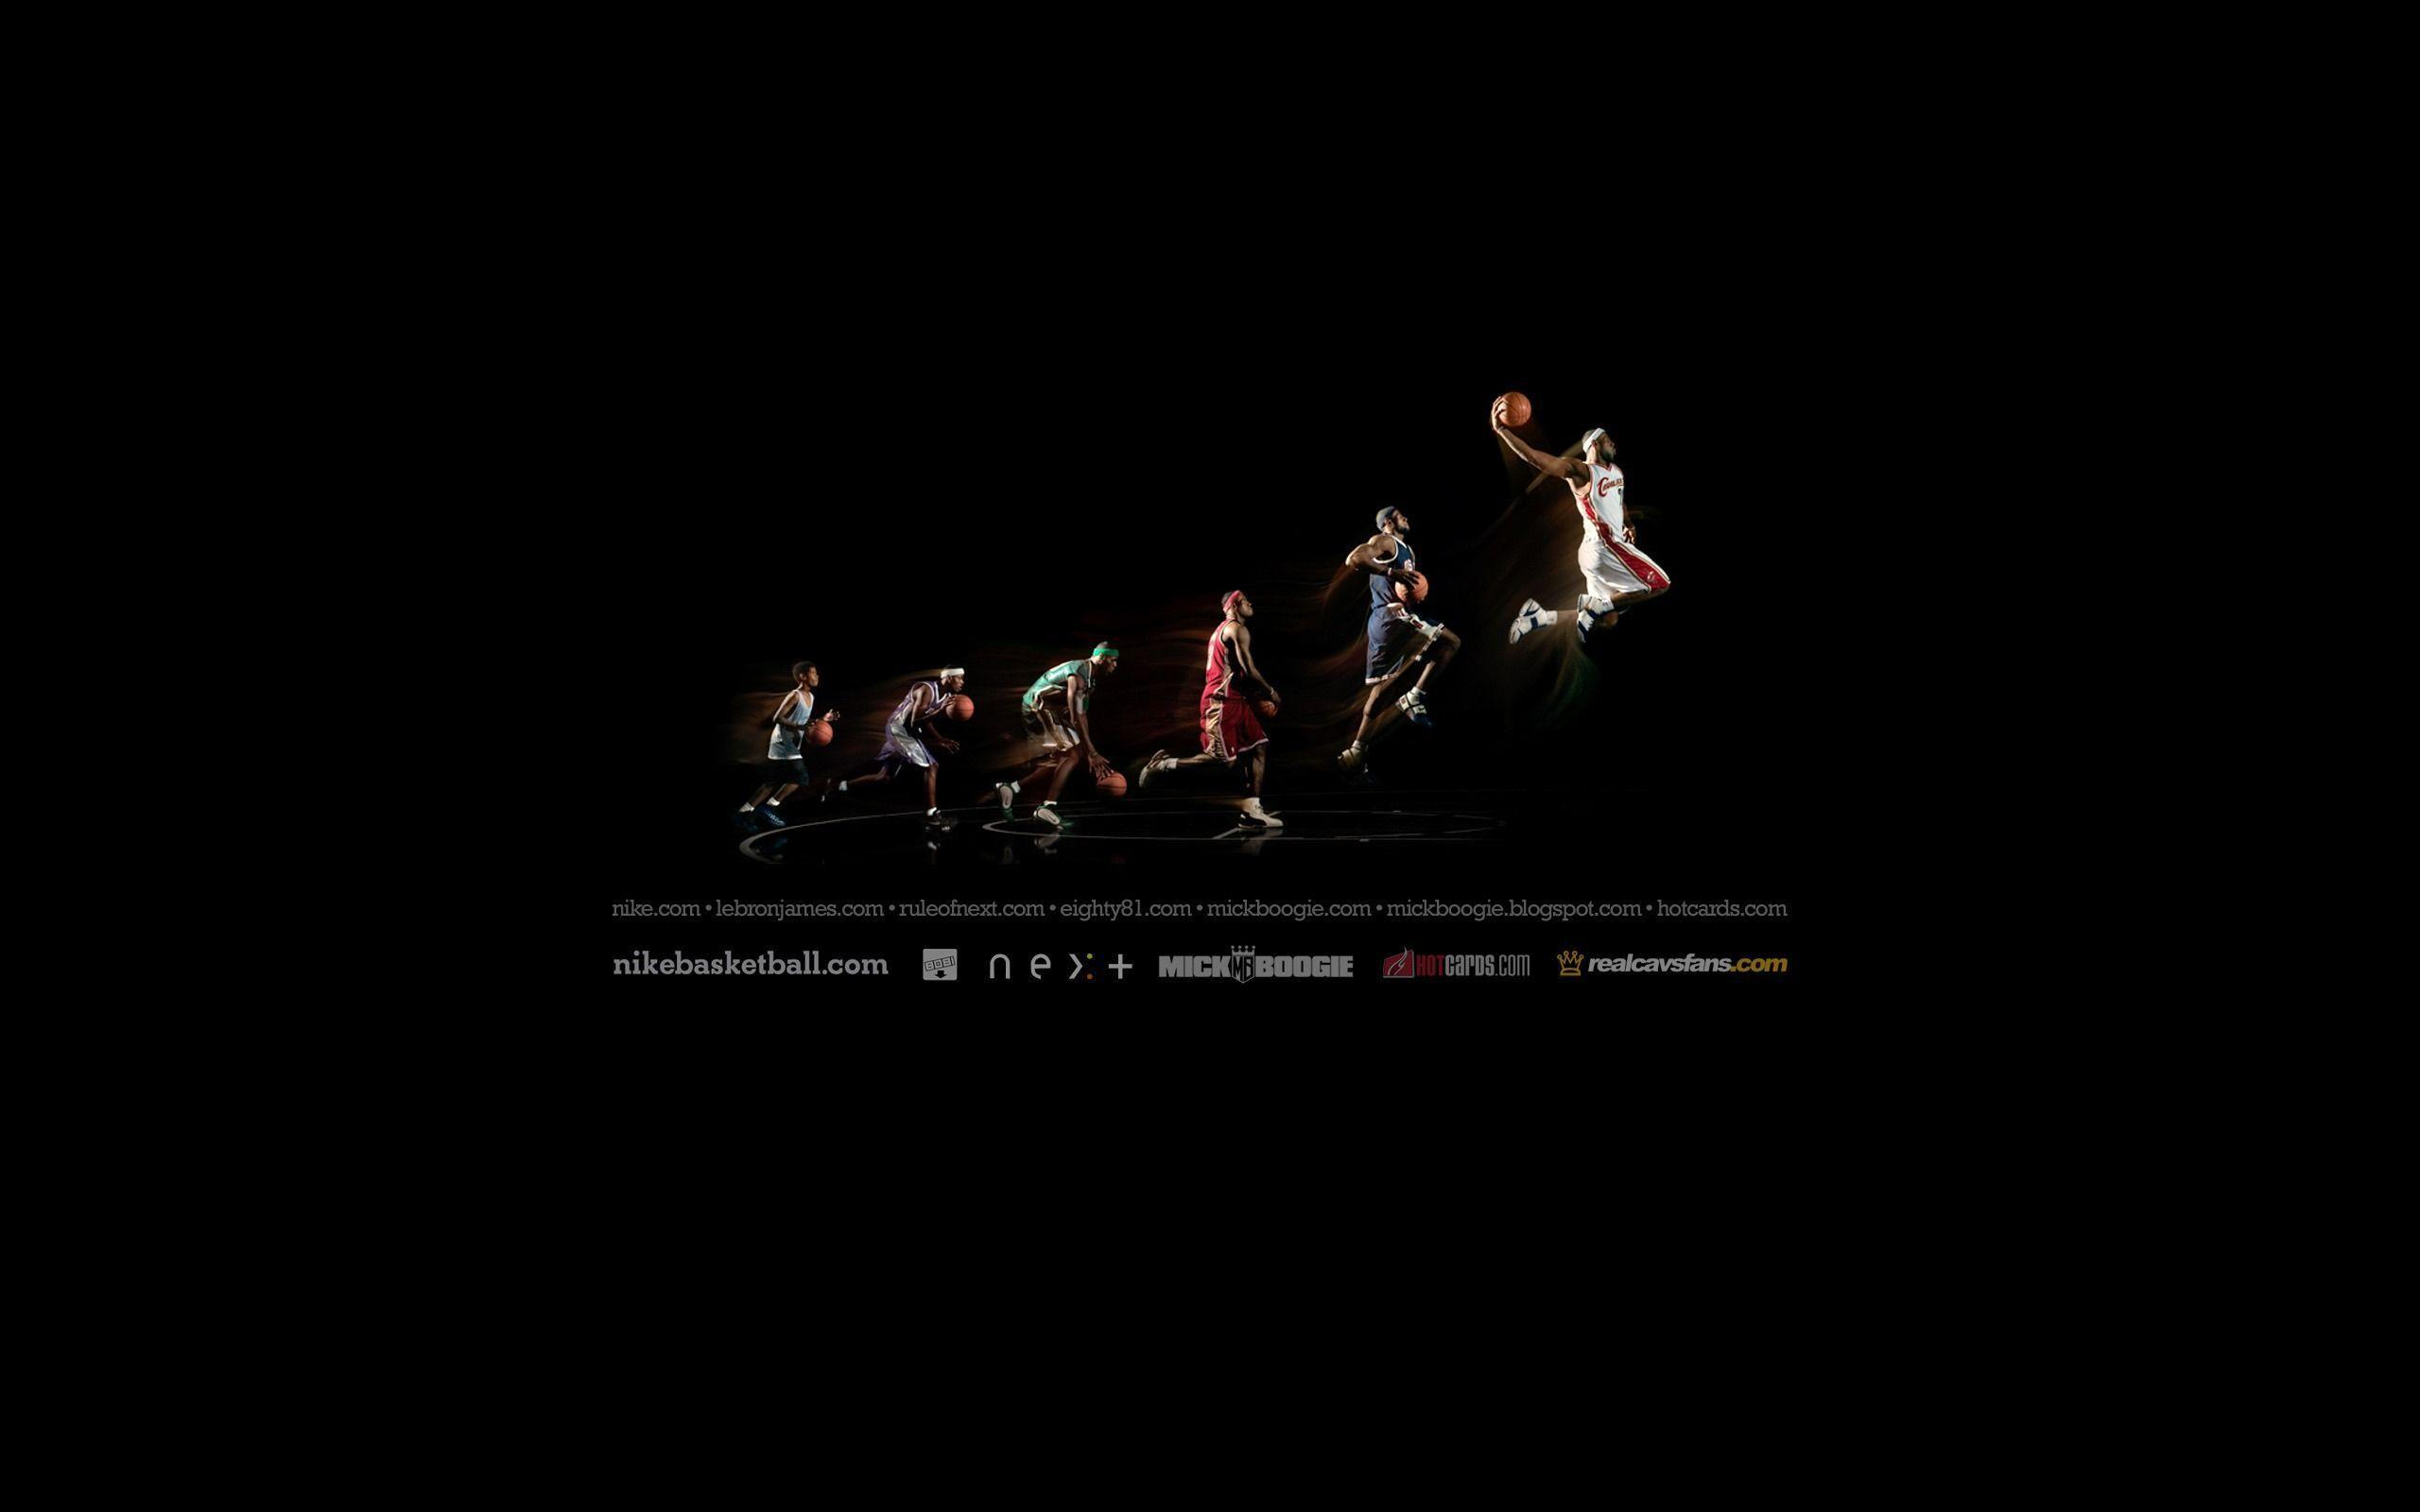 HD Basketball Wallpapers - Wallpaper Cave